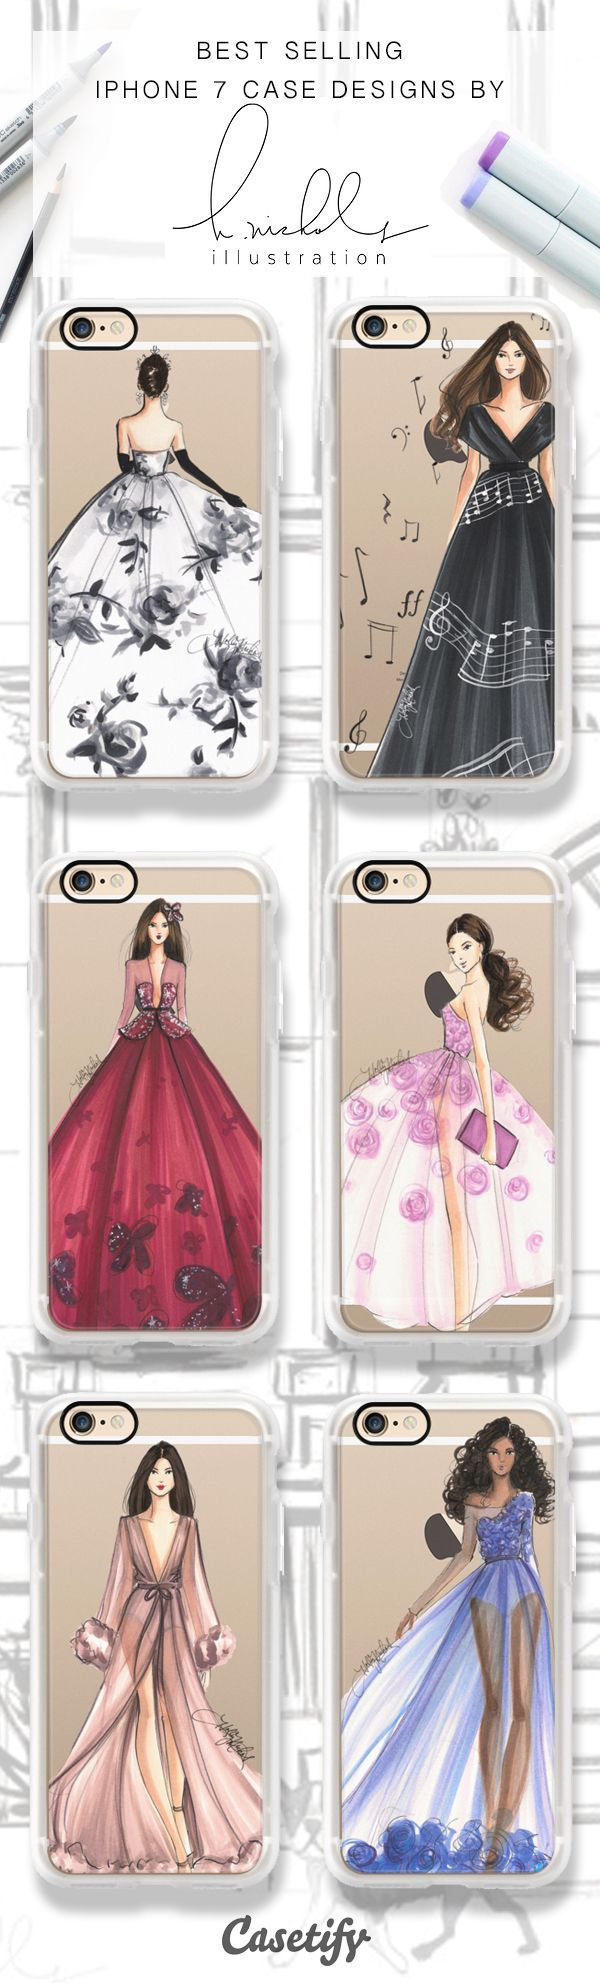 Pick a gown, any gown! Shop these best selling iPhone 6, iPhone 7 and iPhone 7 Plus case by Holly Nichols Illustration here > https://www.casetify.com/hnicholsillustration/collection?